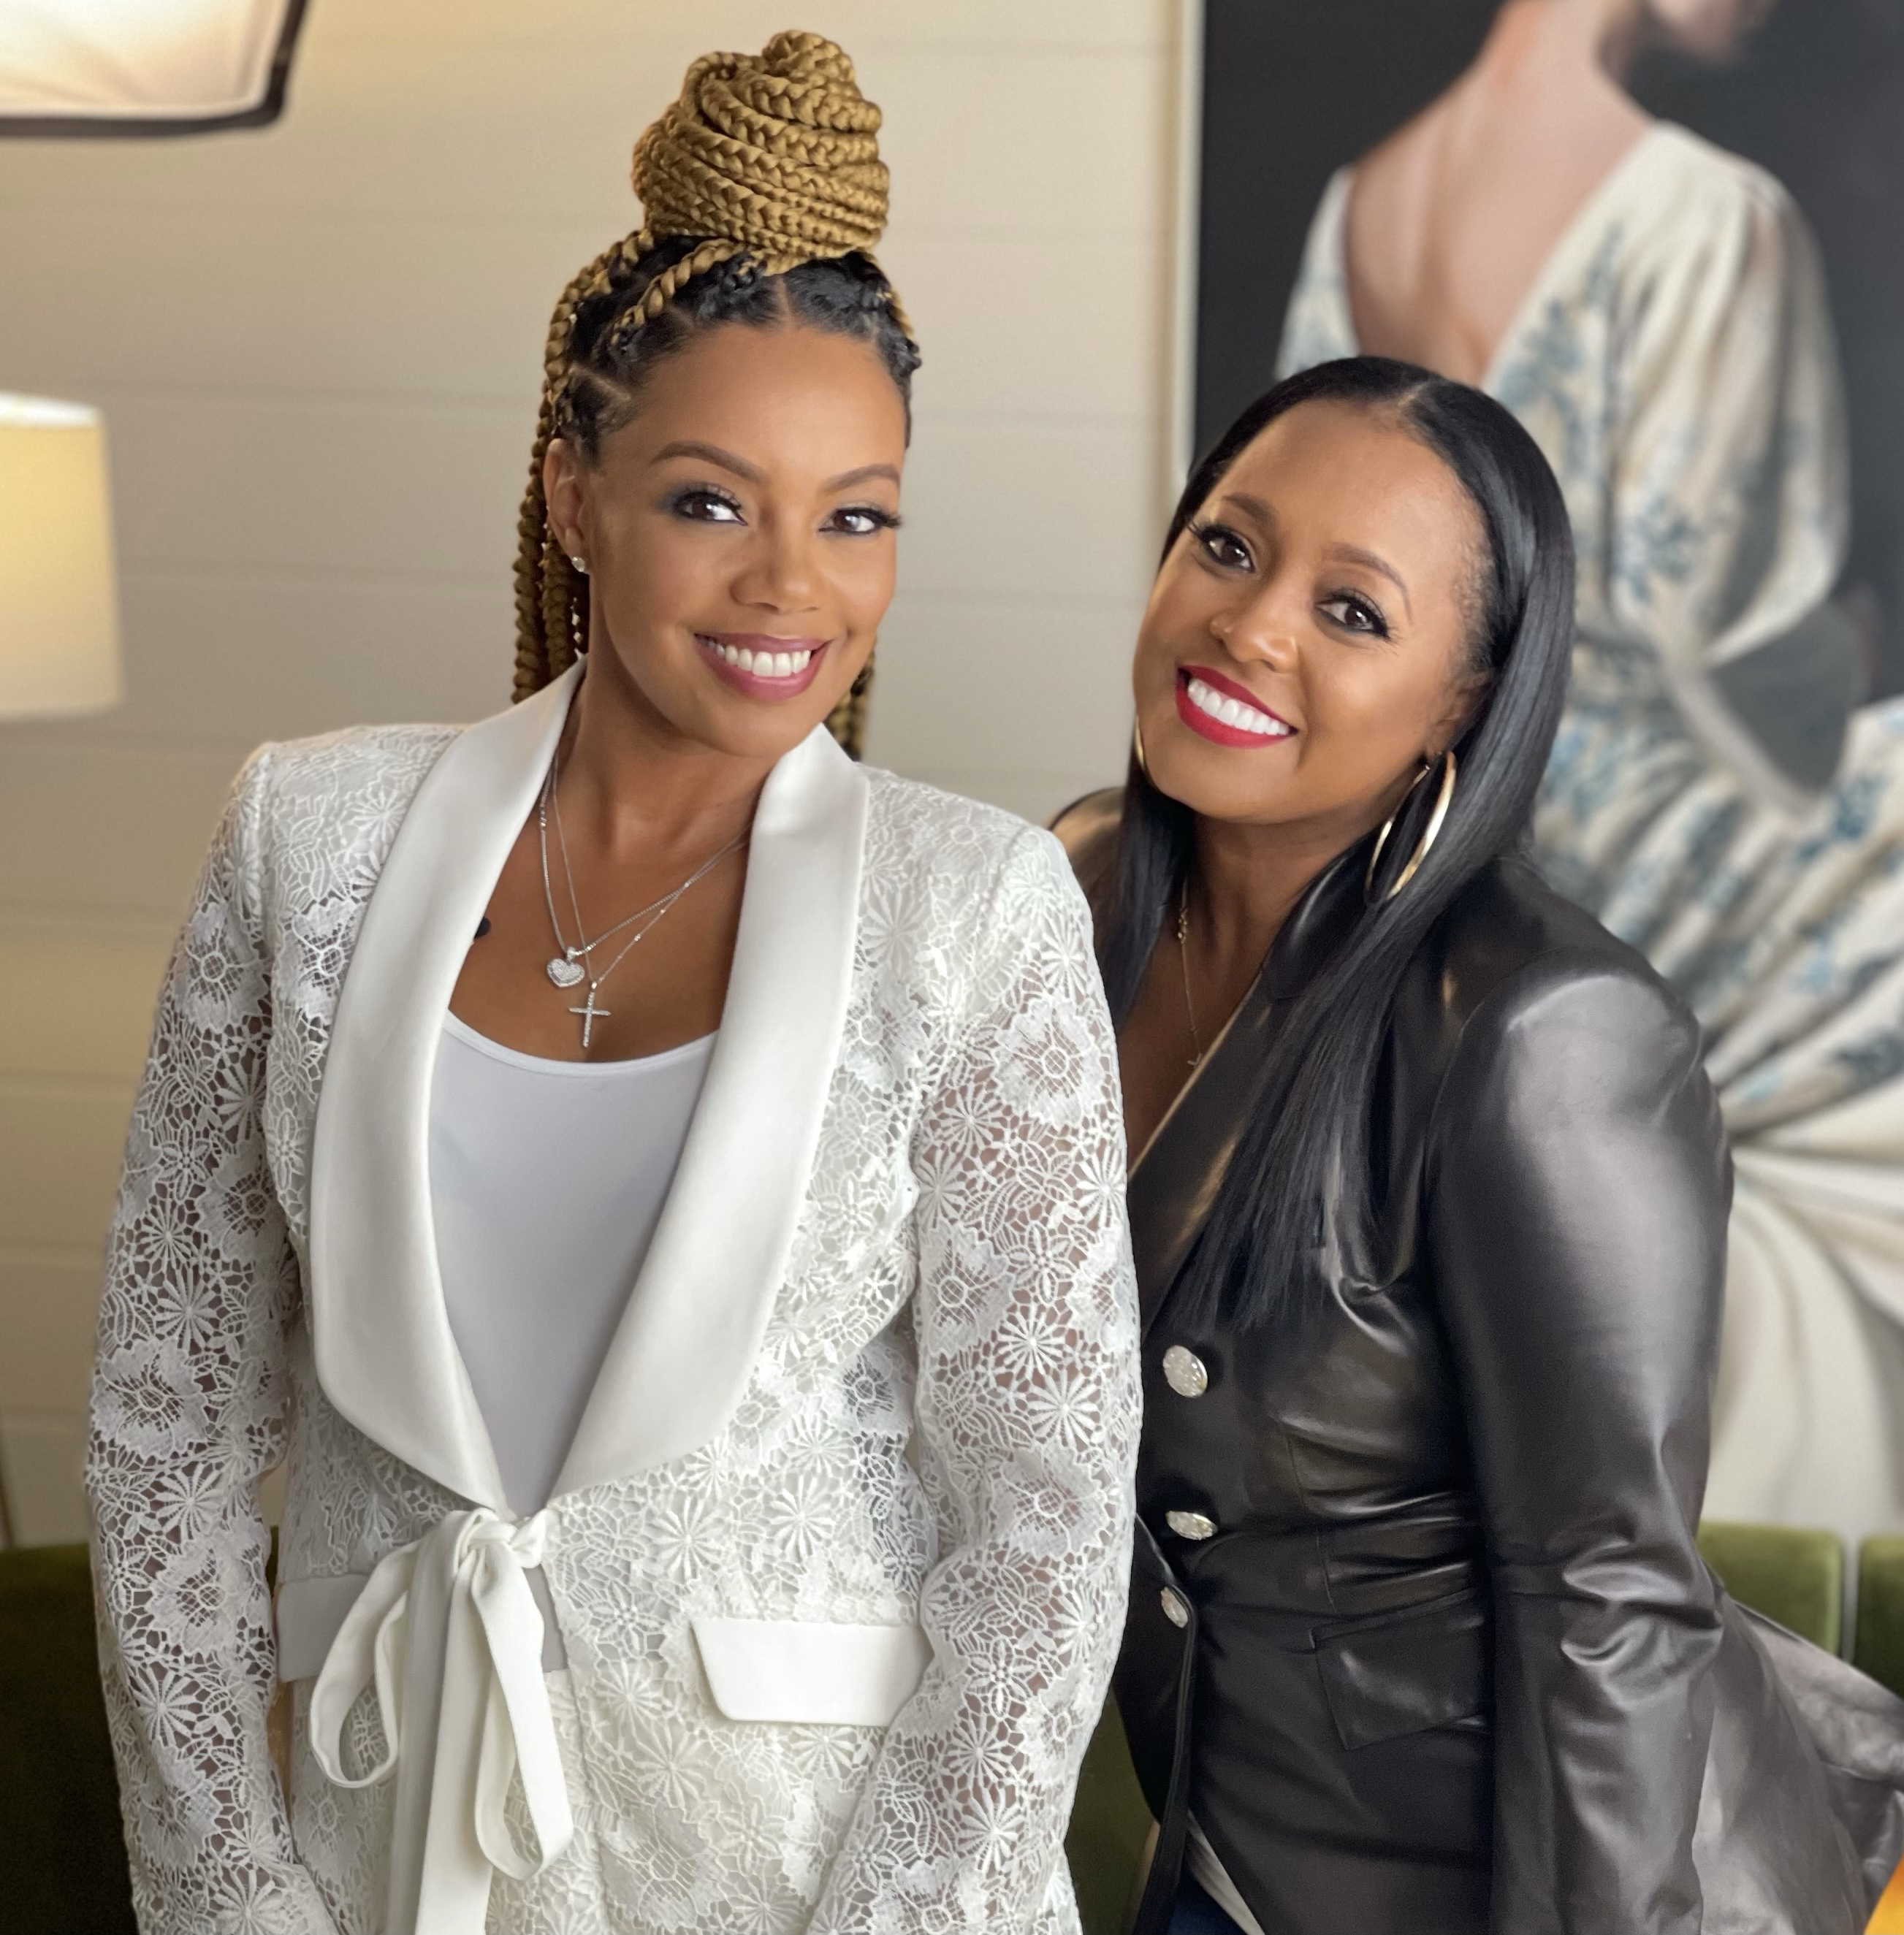 Monique Rodriguez, founder and CEO of Mielle Organics with Keshia Knight Pulliam